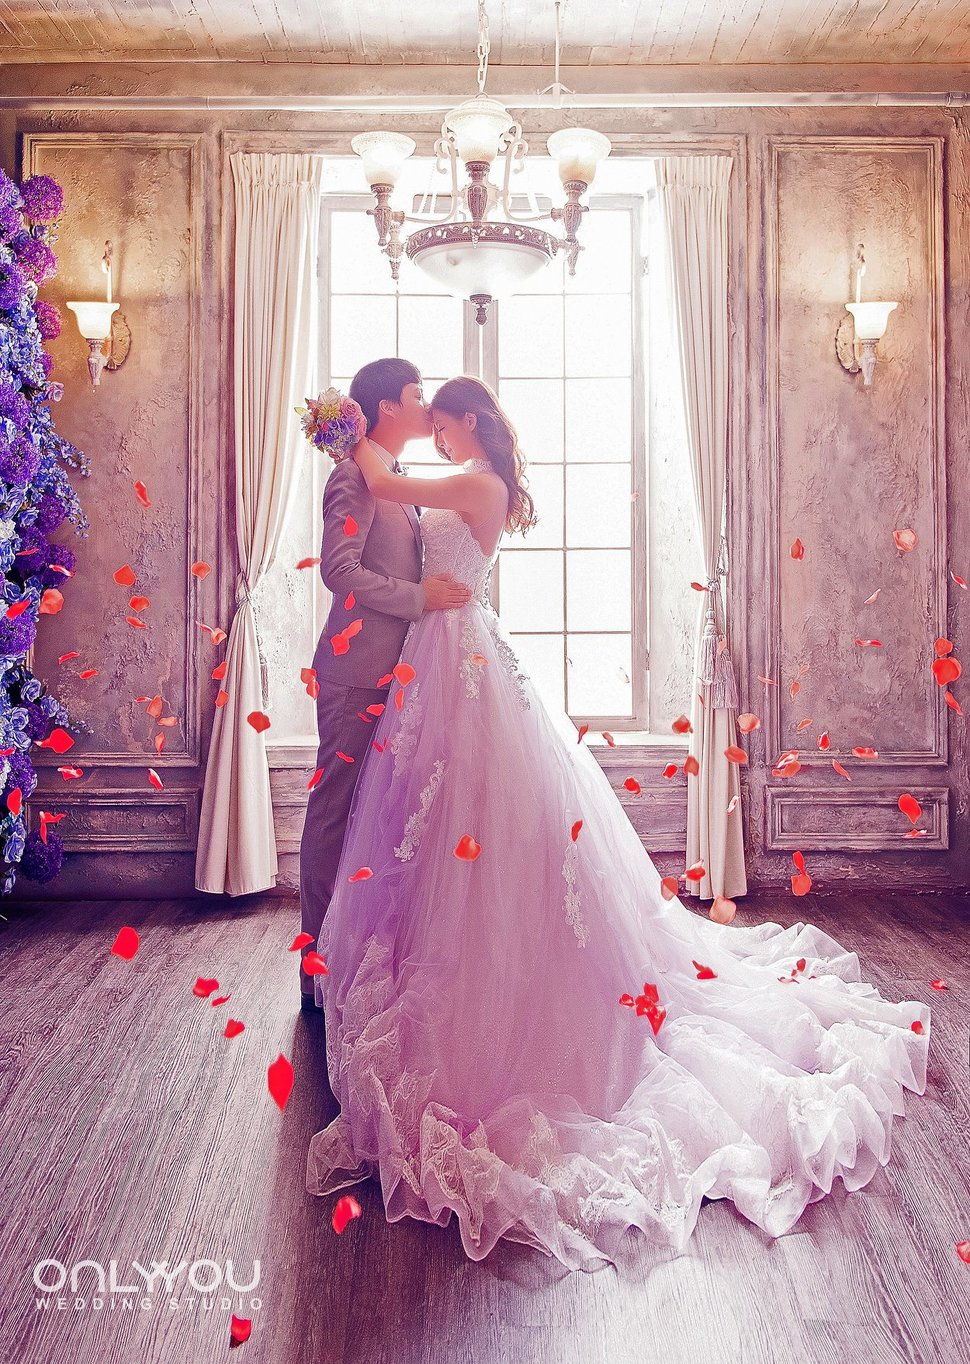 90356737_2794159527306342_271606748182216704_o - ONLY YOU 唯你婚紗攝影《結婚吧》